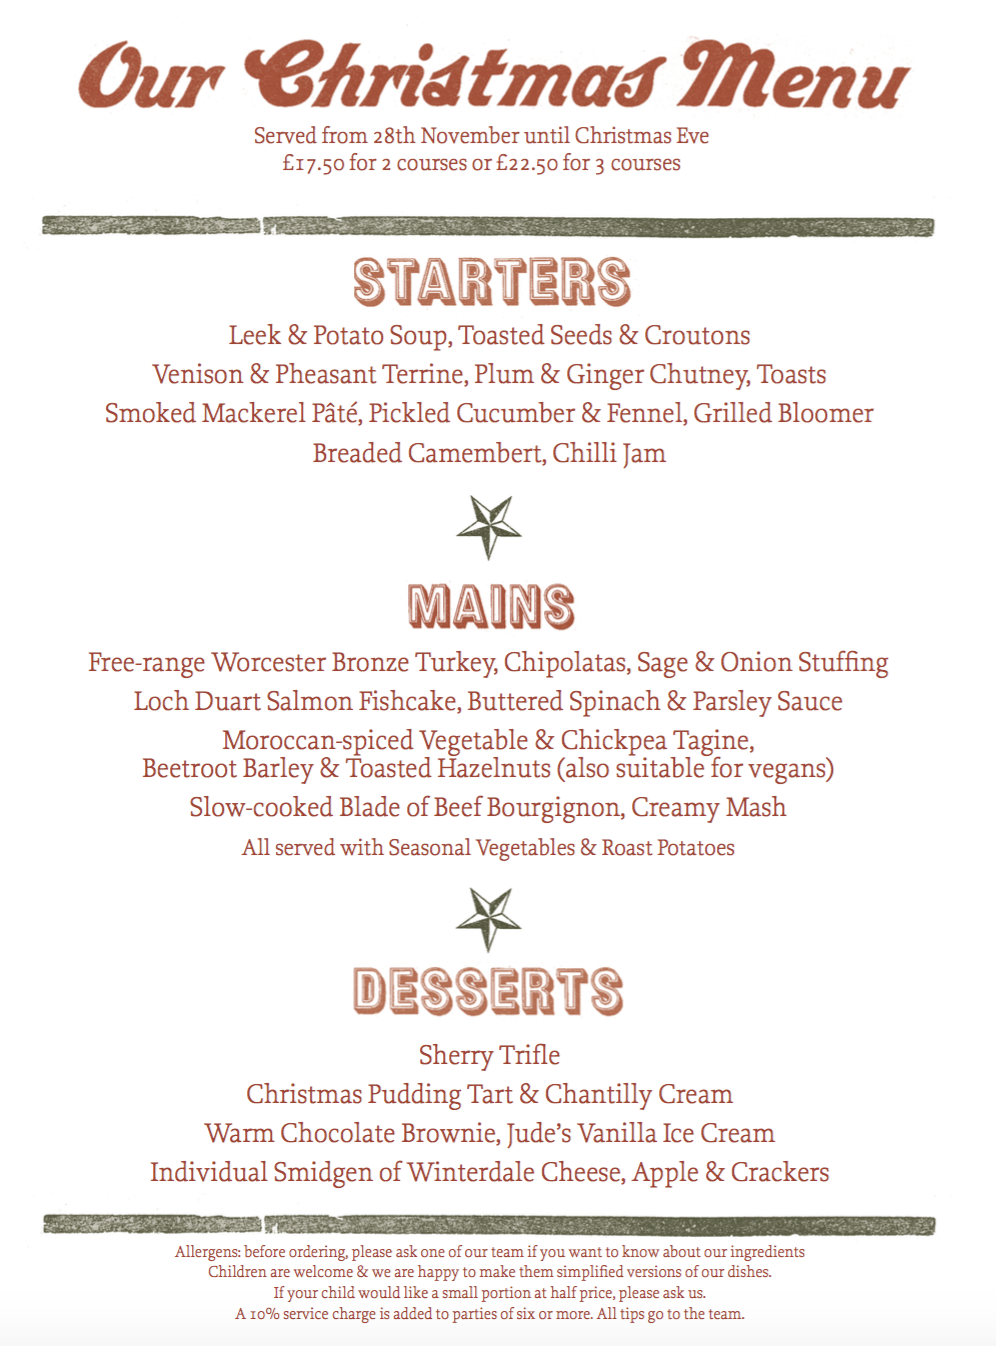 Your Christmas Party or Meal at The One Elm, Stratford-Upon-Avon